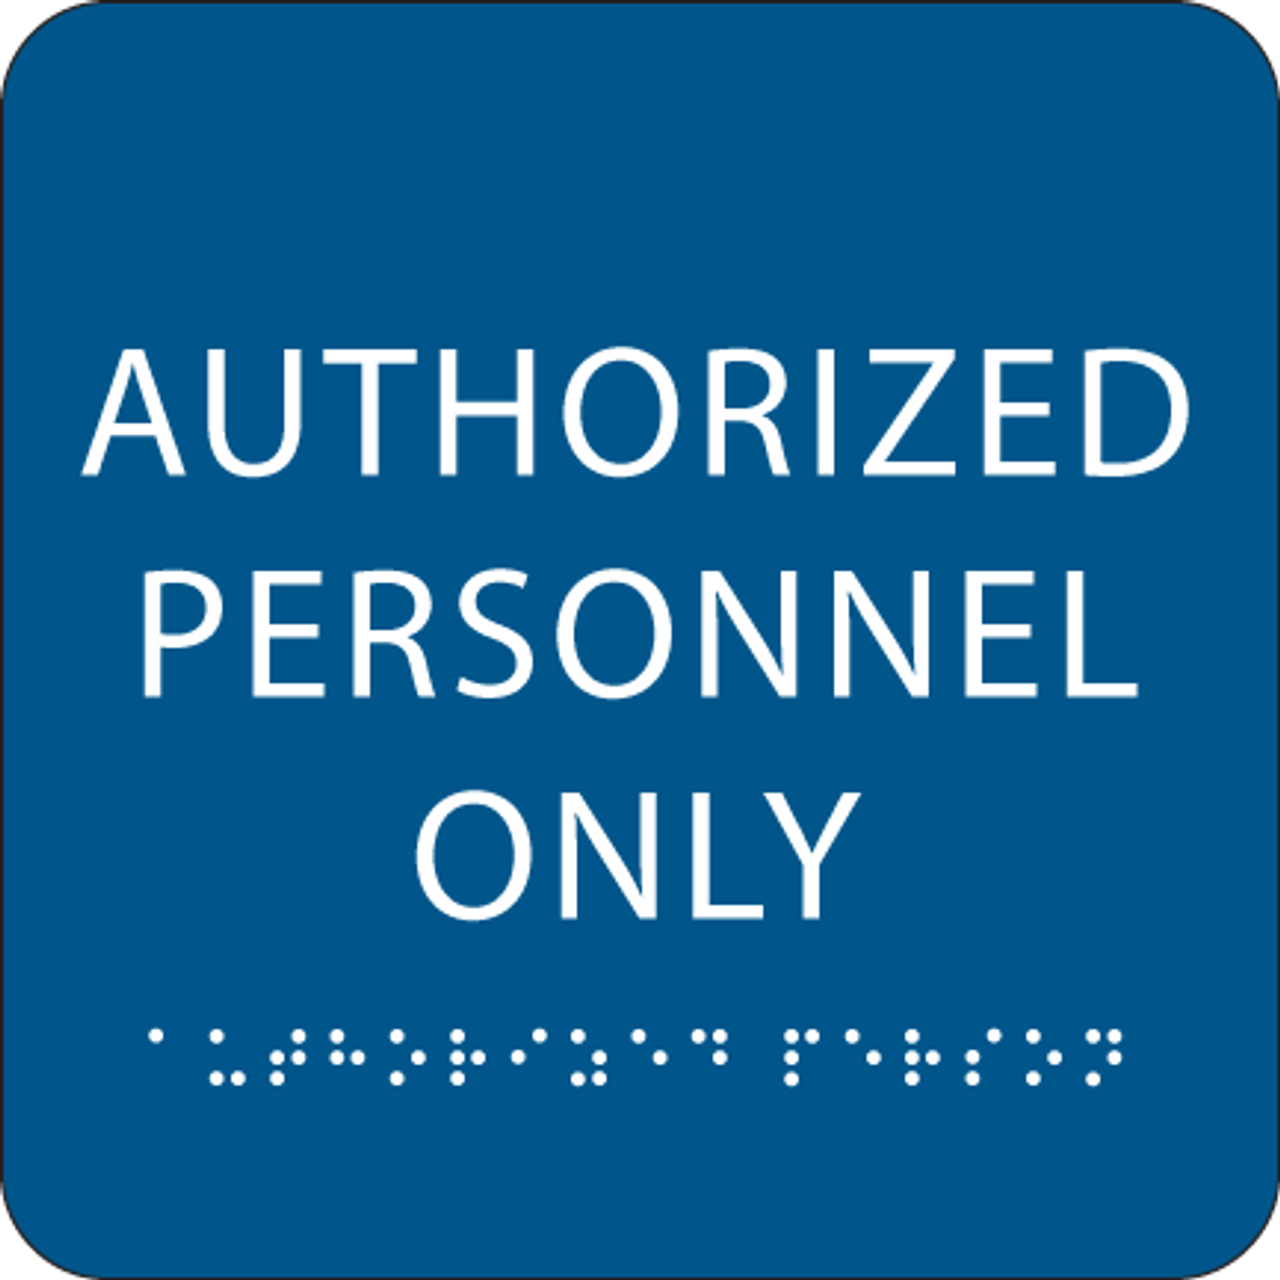 Blue Authorized Personnel Only Tactile Sign